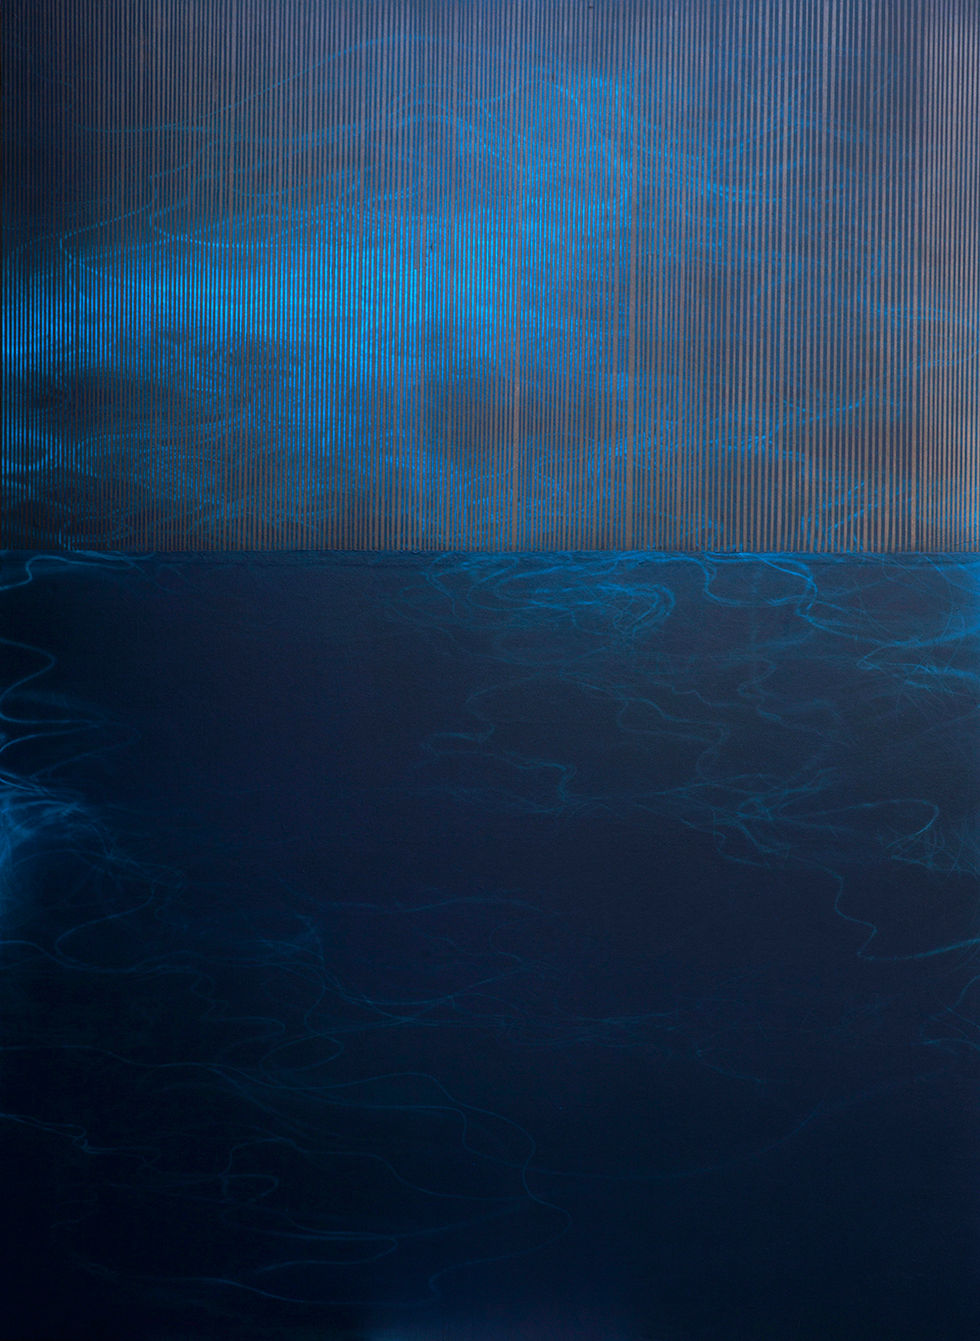 Waterscape 1303, 244x180cm, Graphite, acrylic, water-drawing on Mulberry paper, 2013